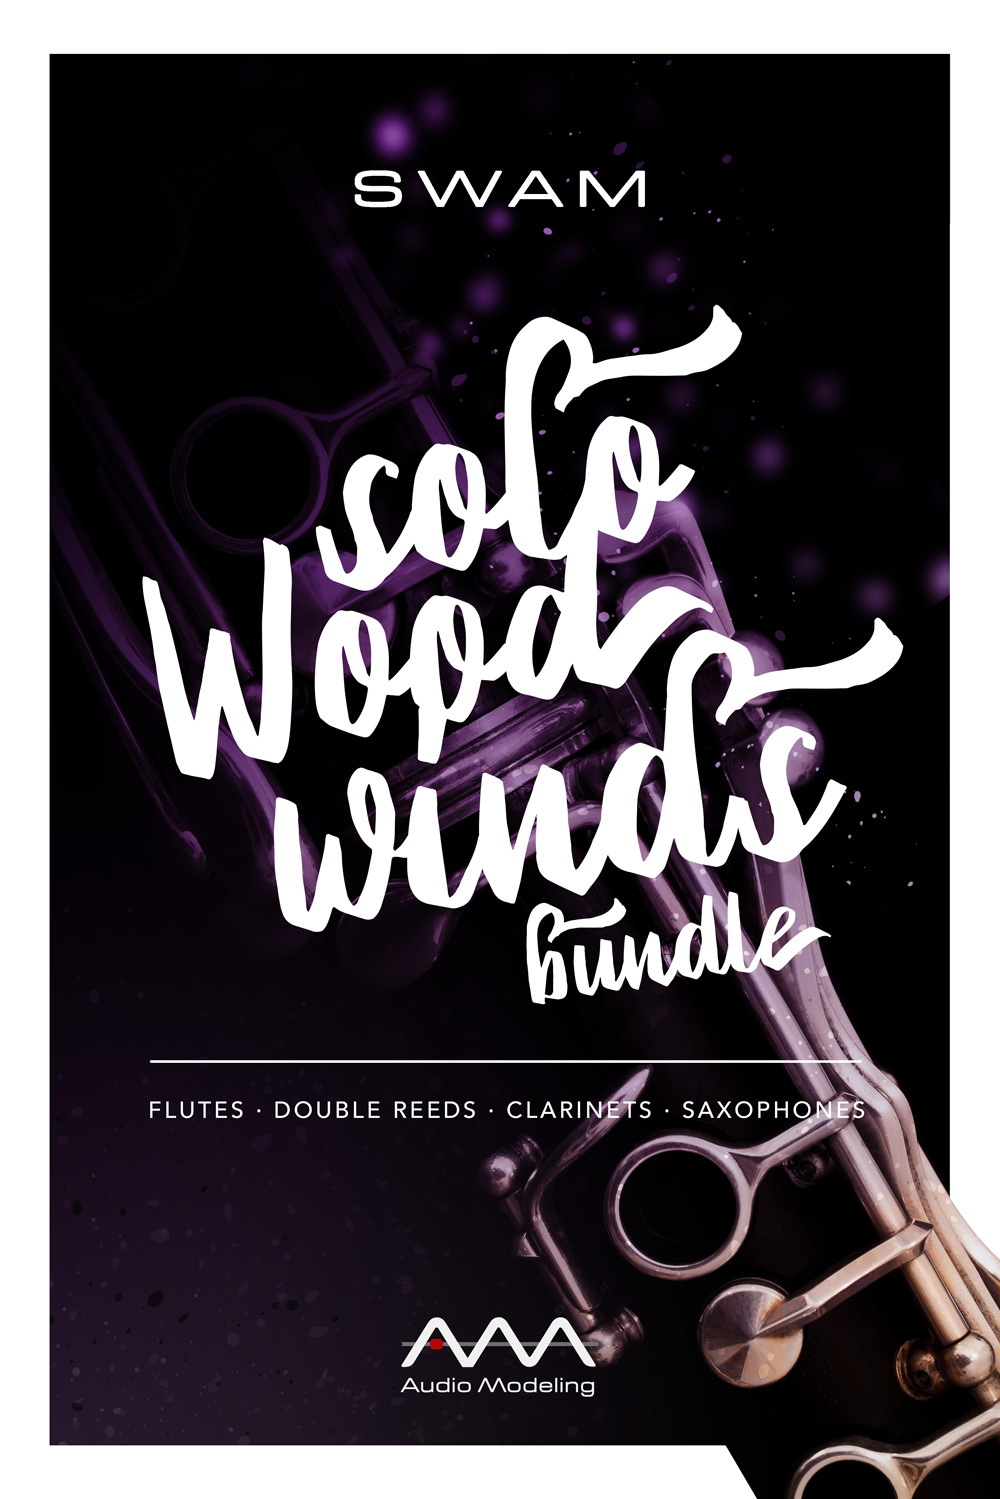 20180921_swam_swam_woodwinds_bundle